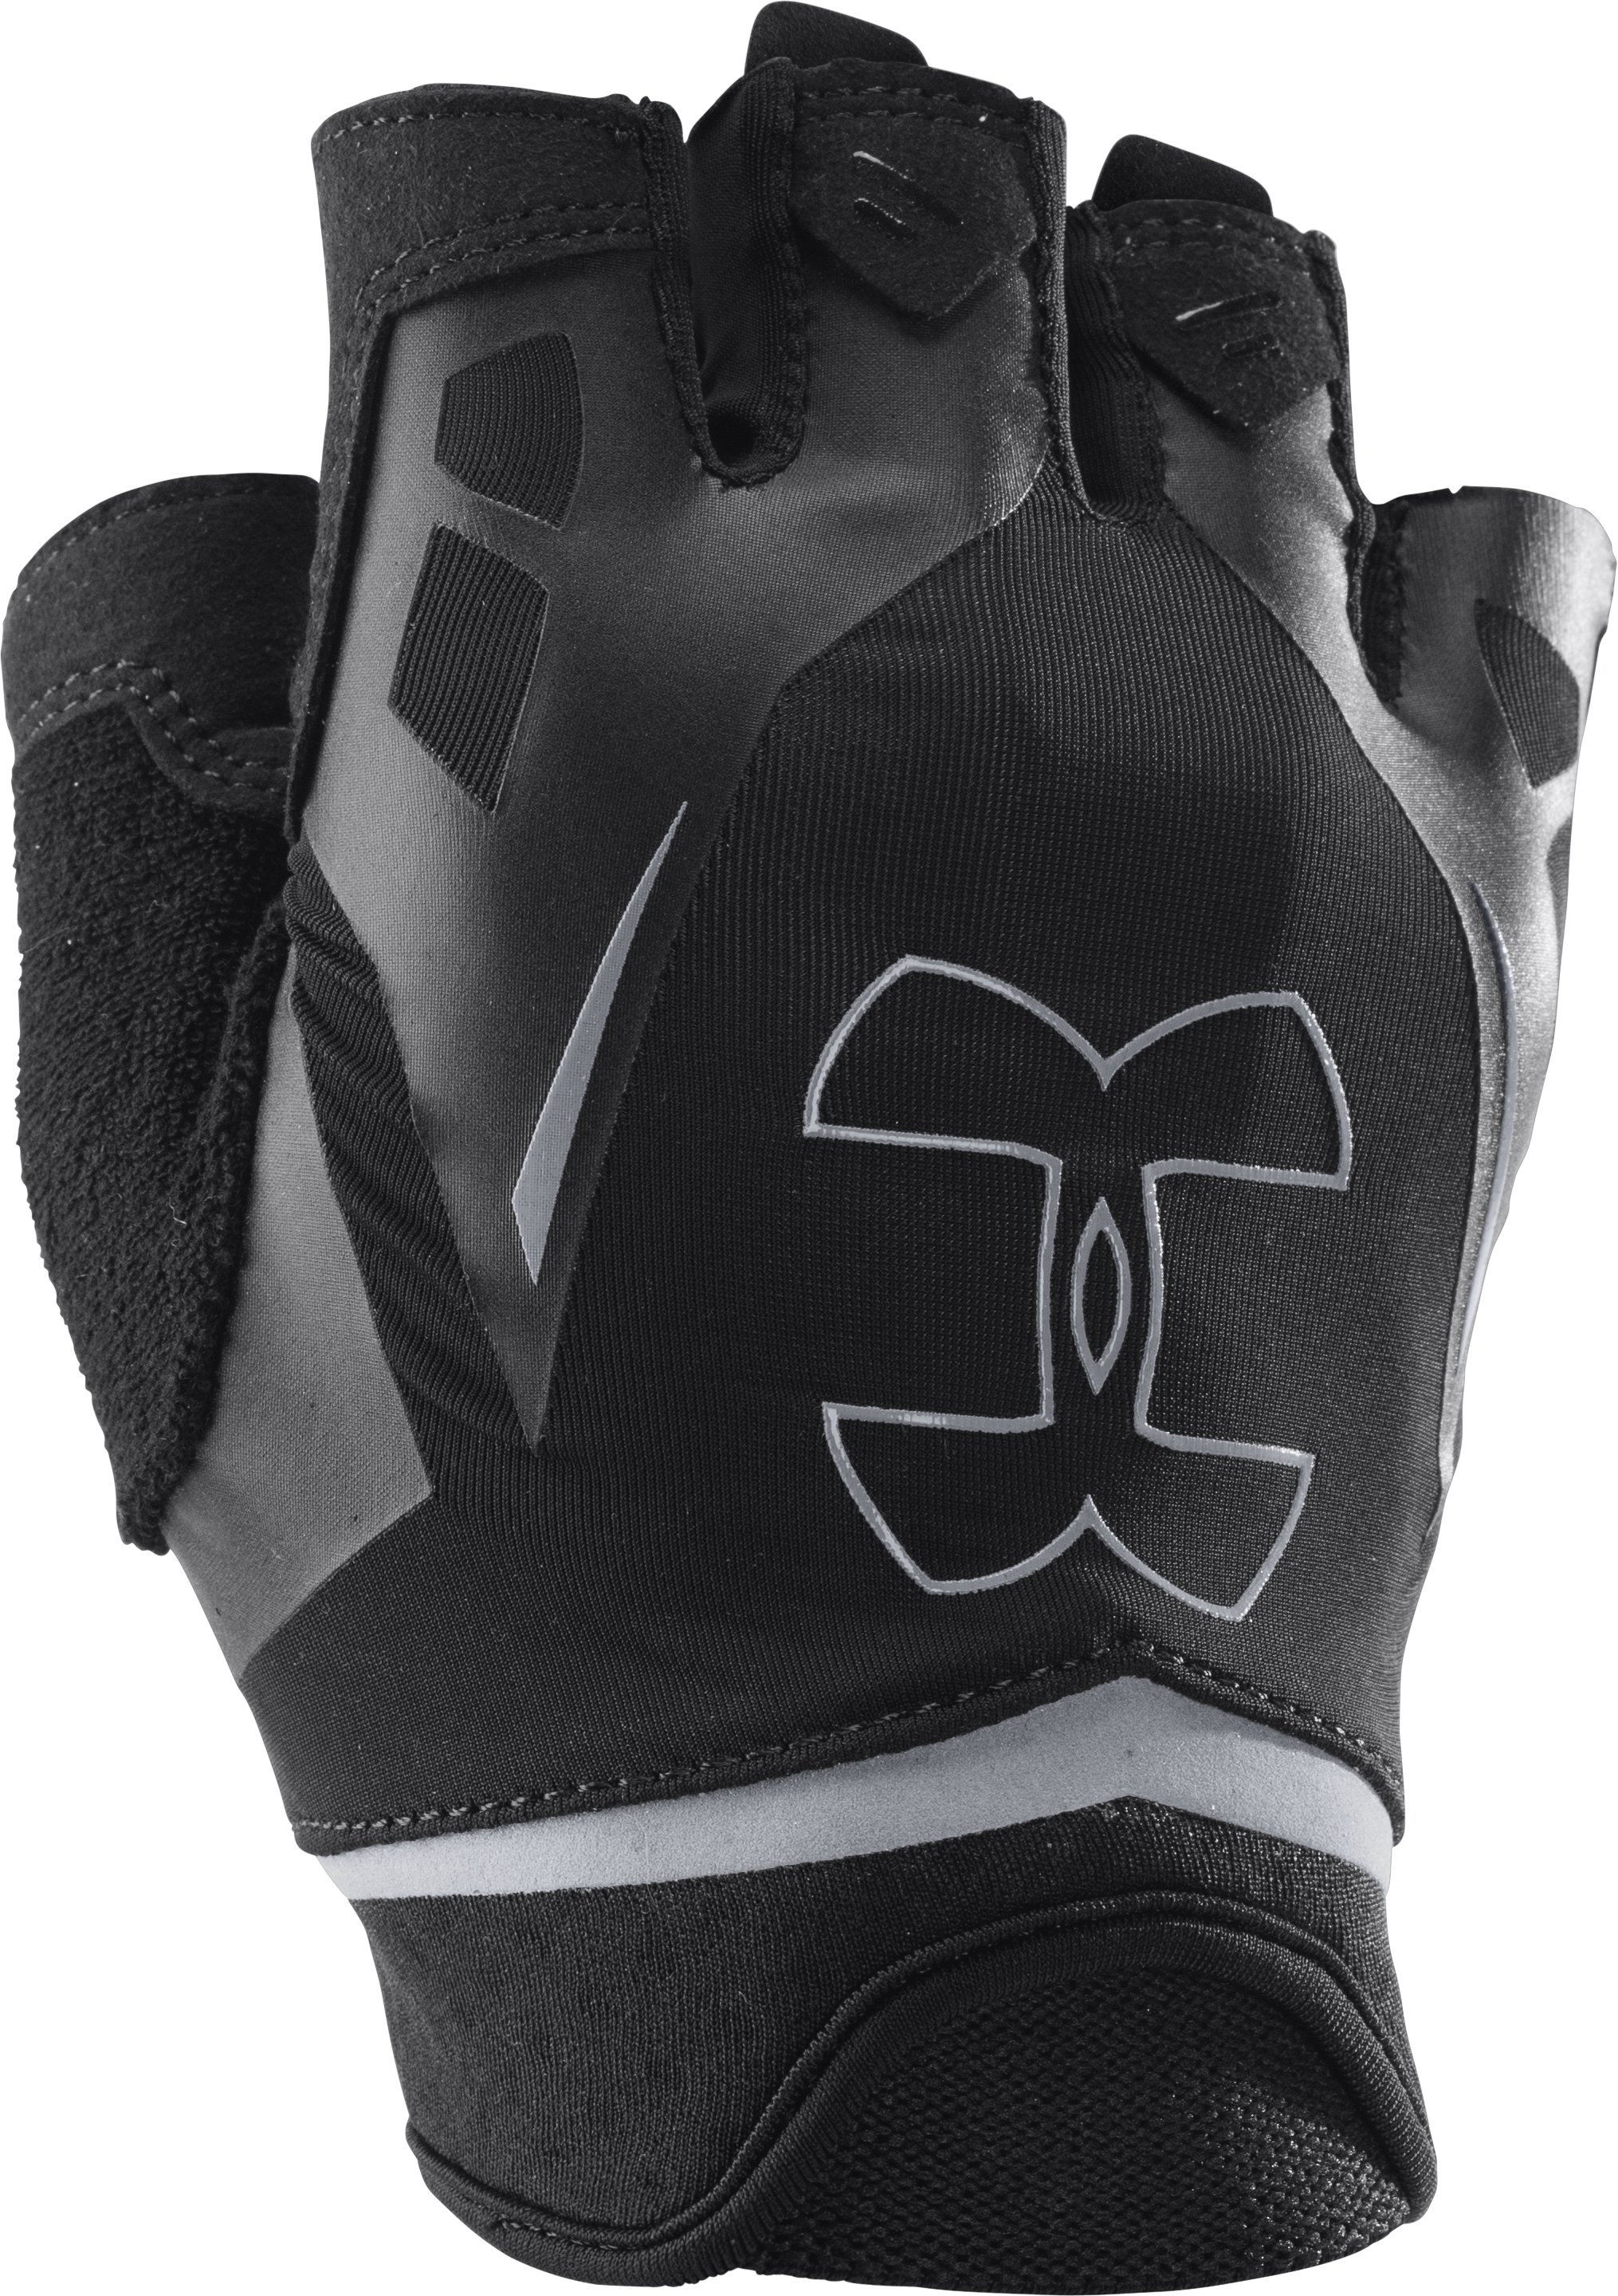 half finger gloves Men's UA Flux Half-Finger Training Gloves Nicely improved training gloves...They seem to hold up ok....No straps and nothing unnecessary.